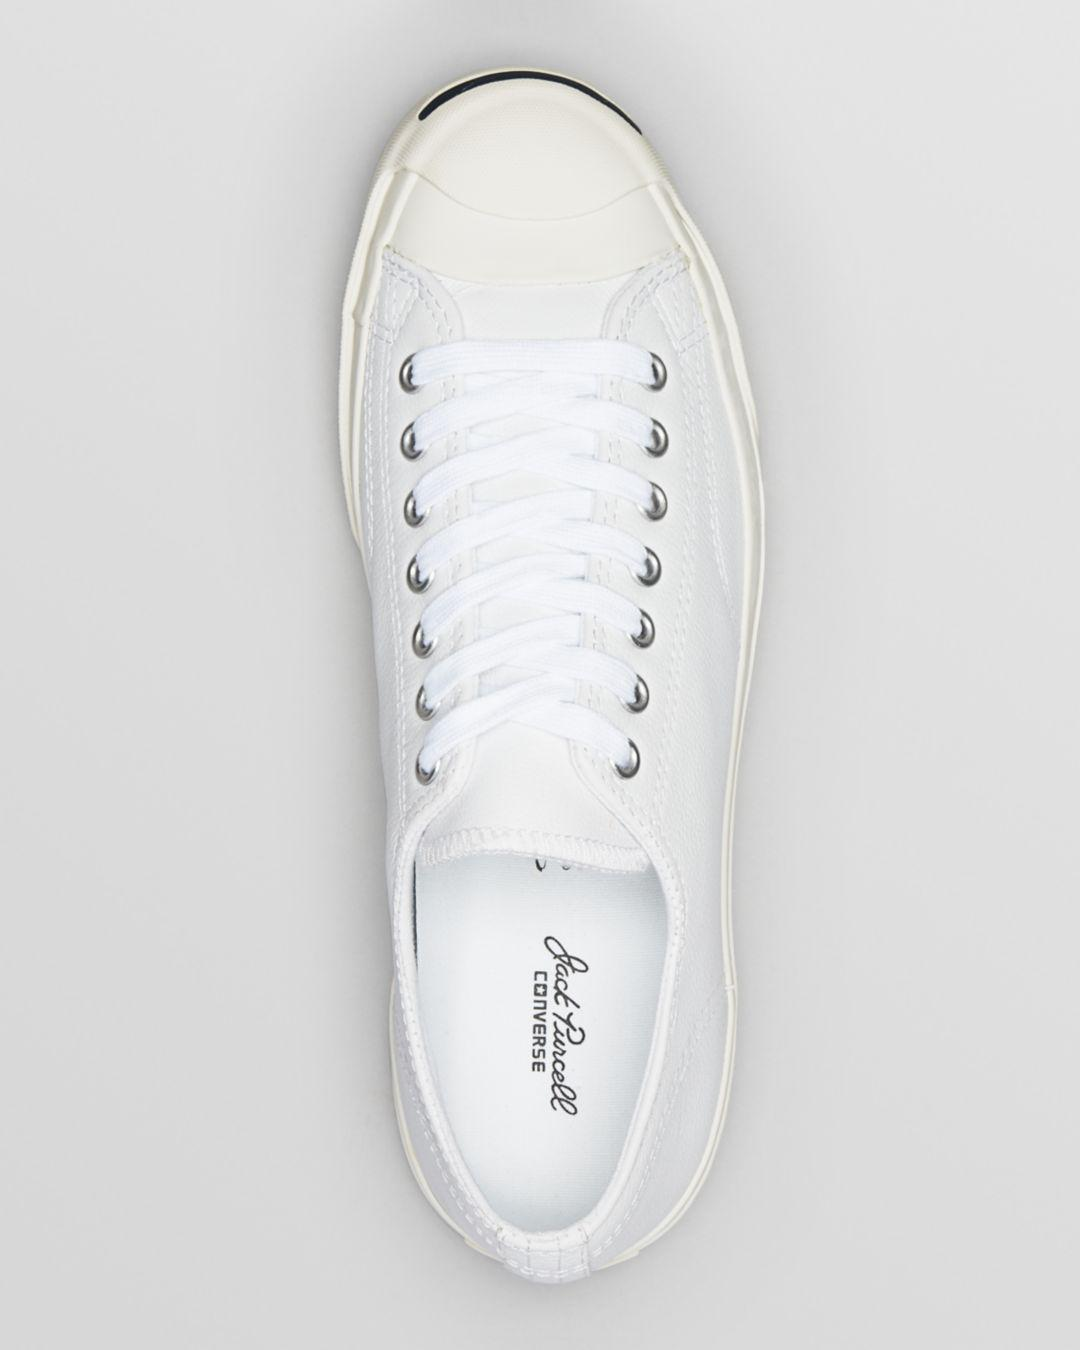 2737b8ef9bfb43 Lyst - Converse Men s Jack Purcell Leather Lace Up Sneakers in White for Men